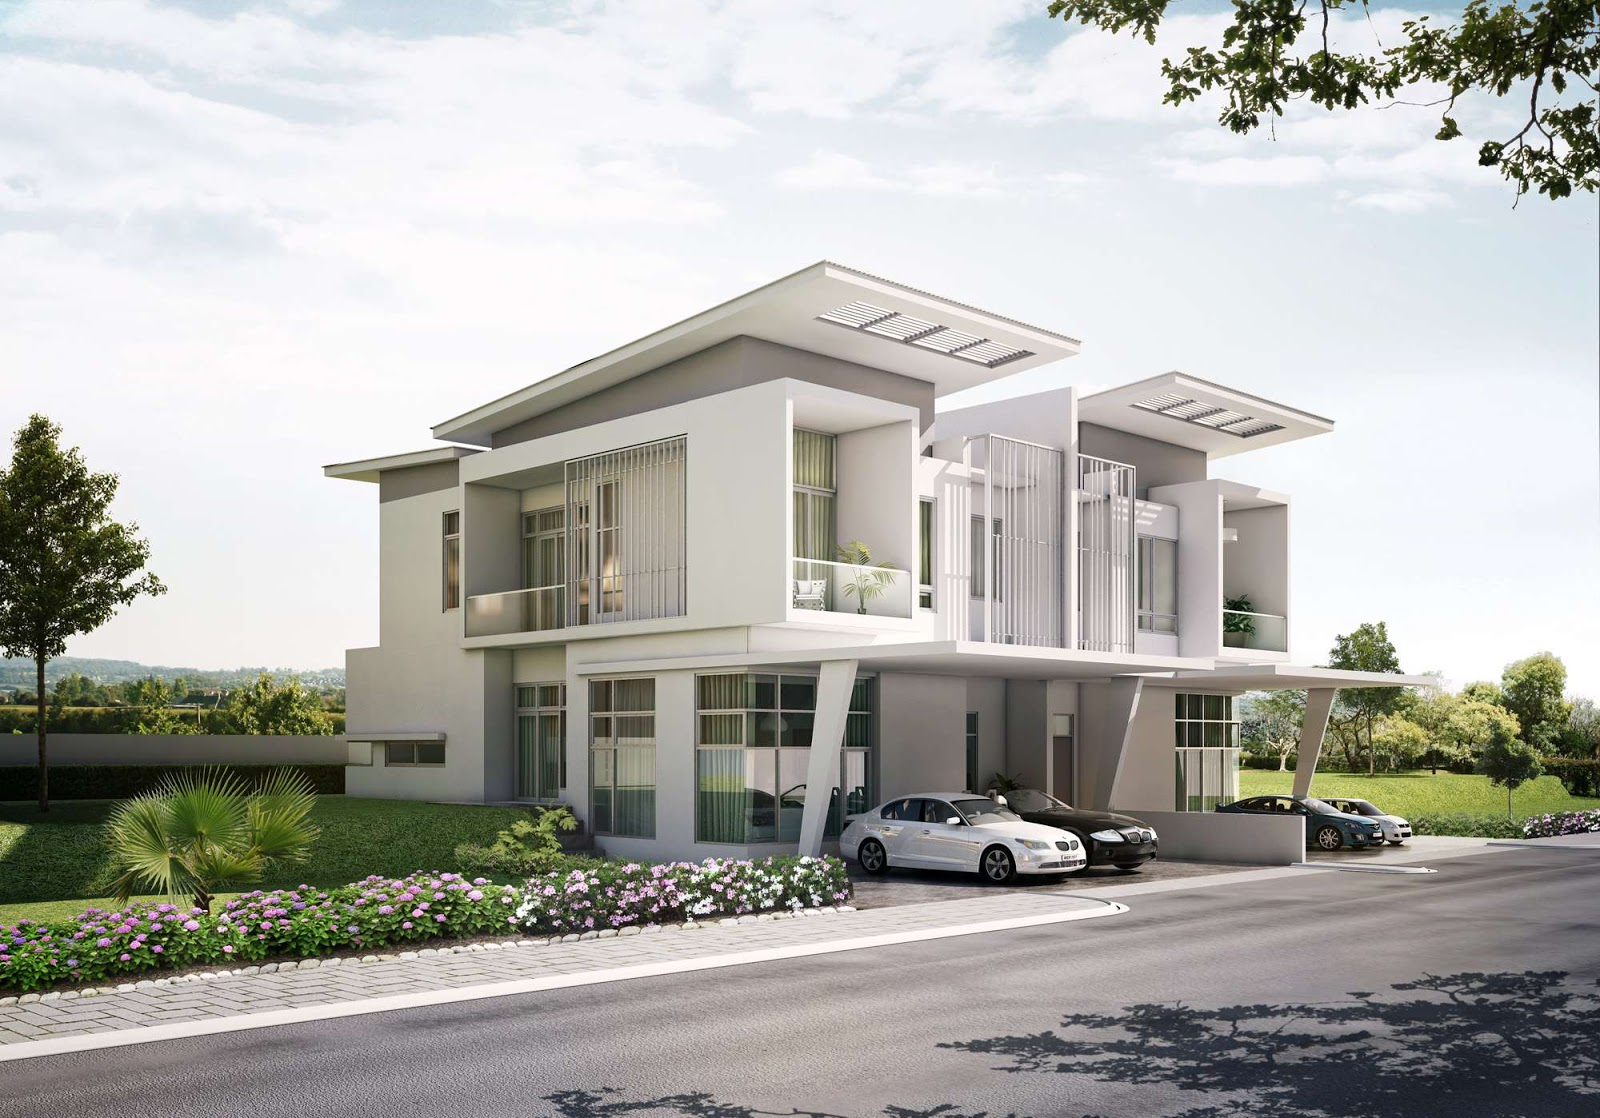 New home designs latest singapore modern homes exterior for Latest home